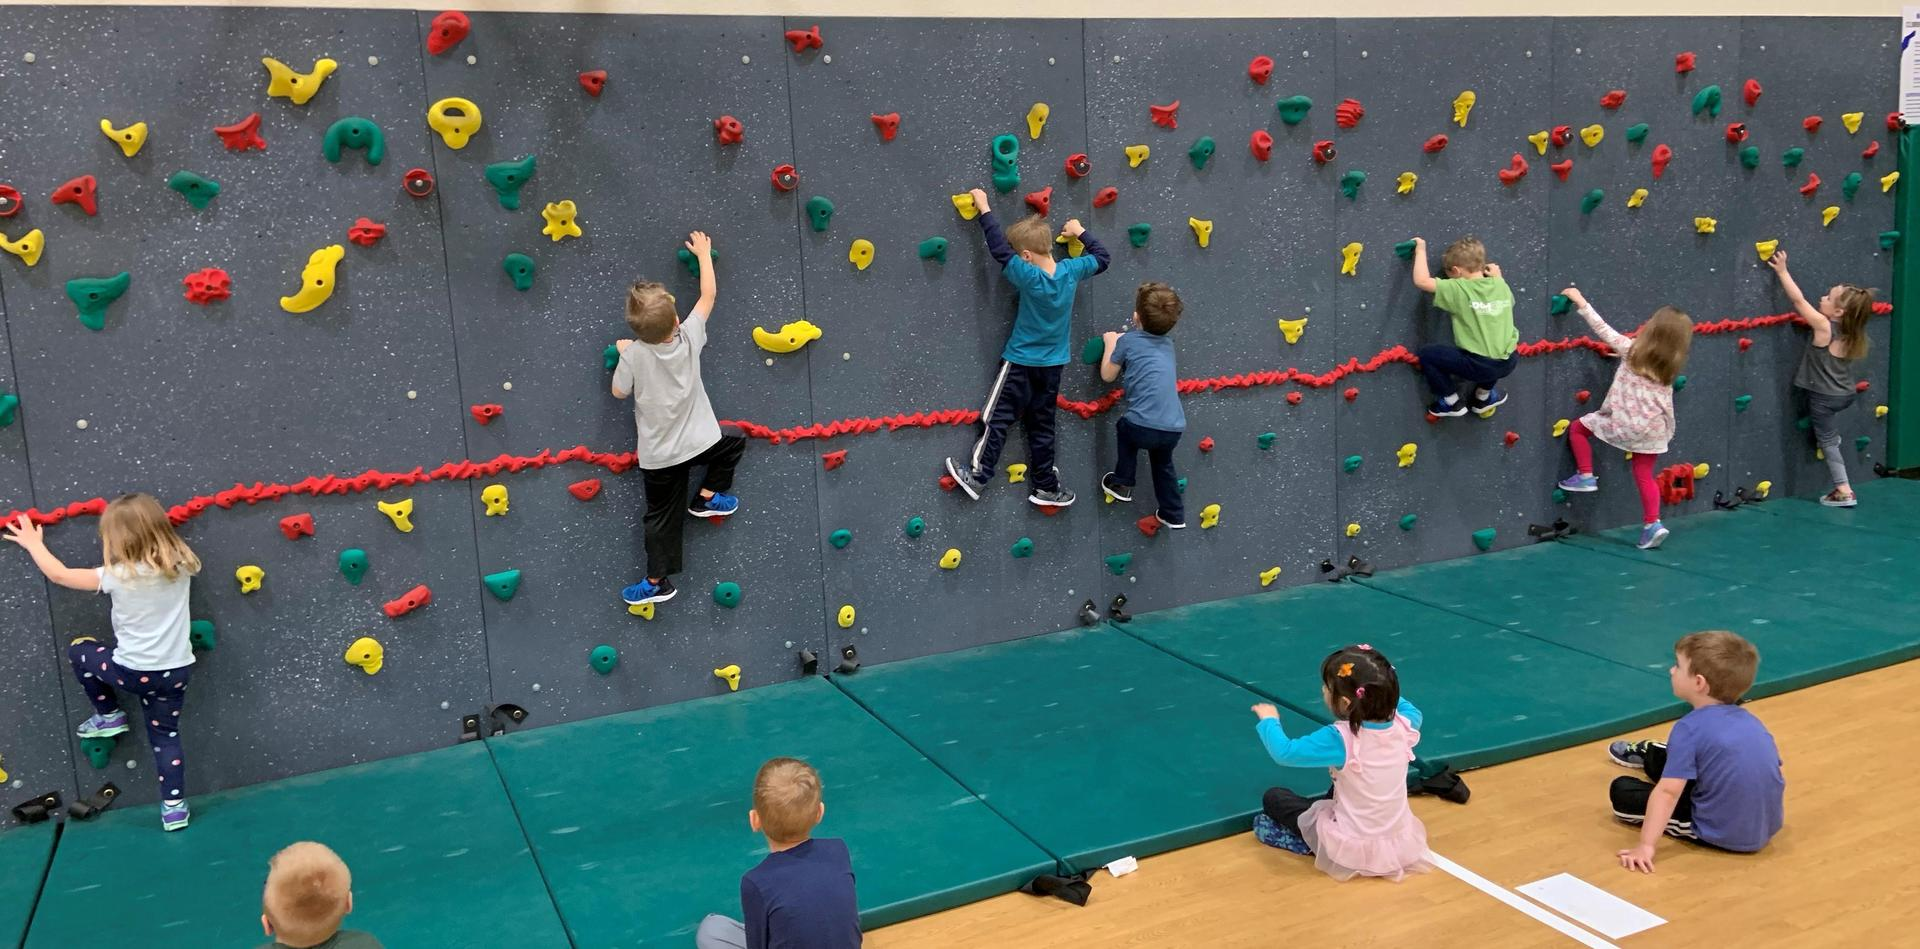 Rock climbing  in gym class